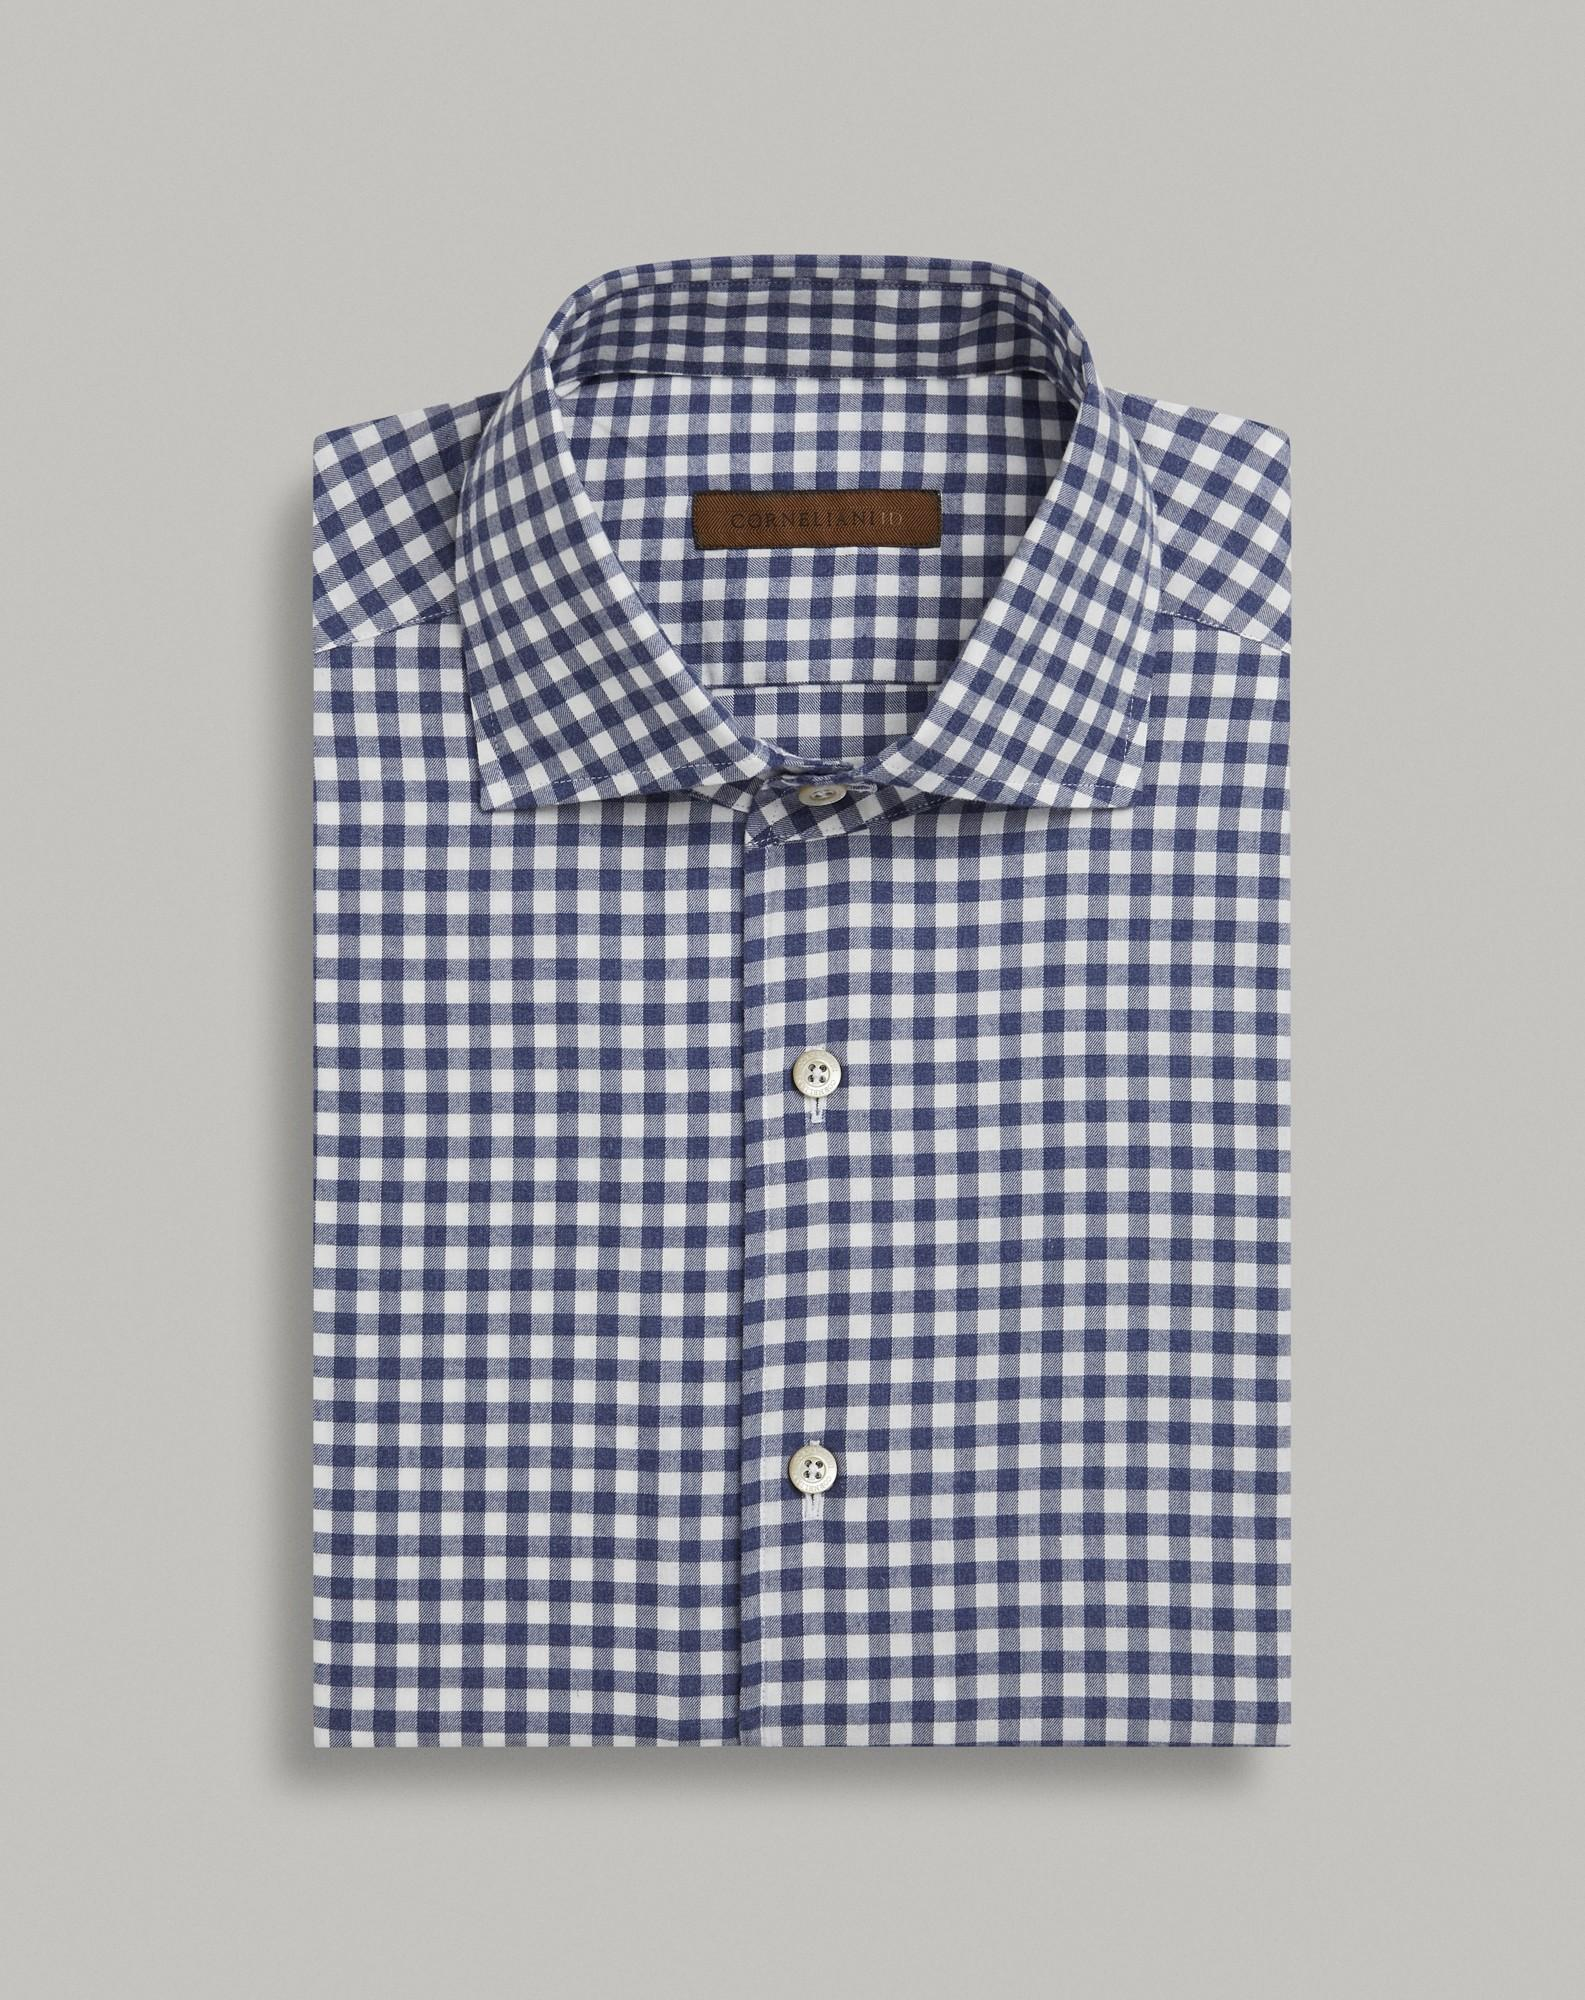 CAMICIA IN COTONE SUPERLIGHT QUADRETTO BLU MELANGE Corneliani Camicia